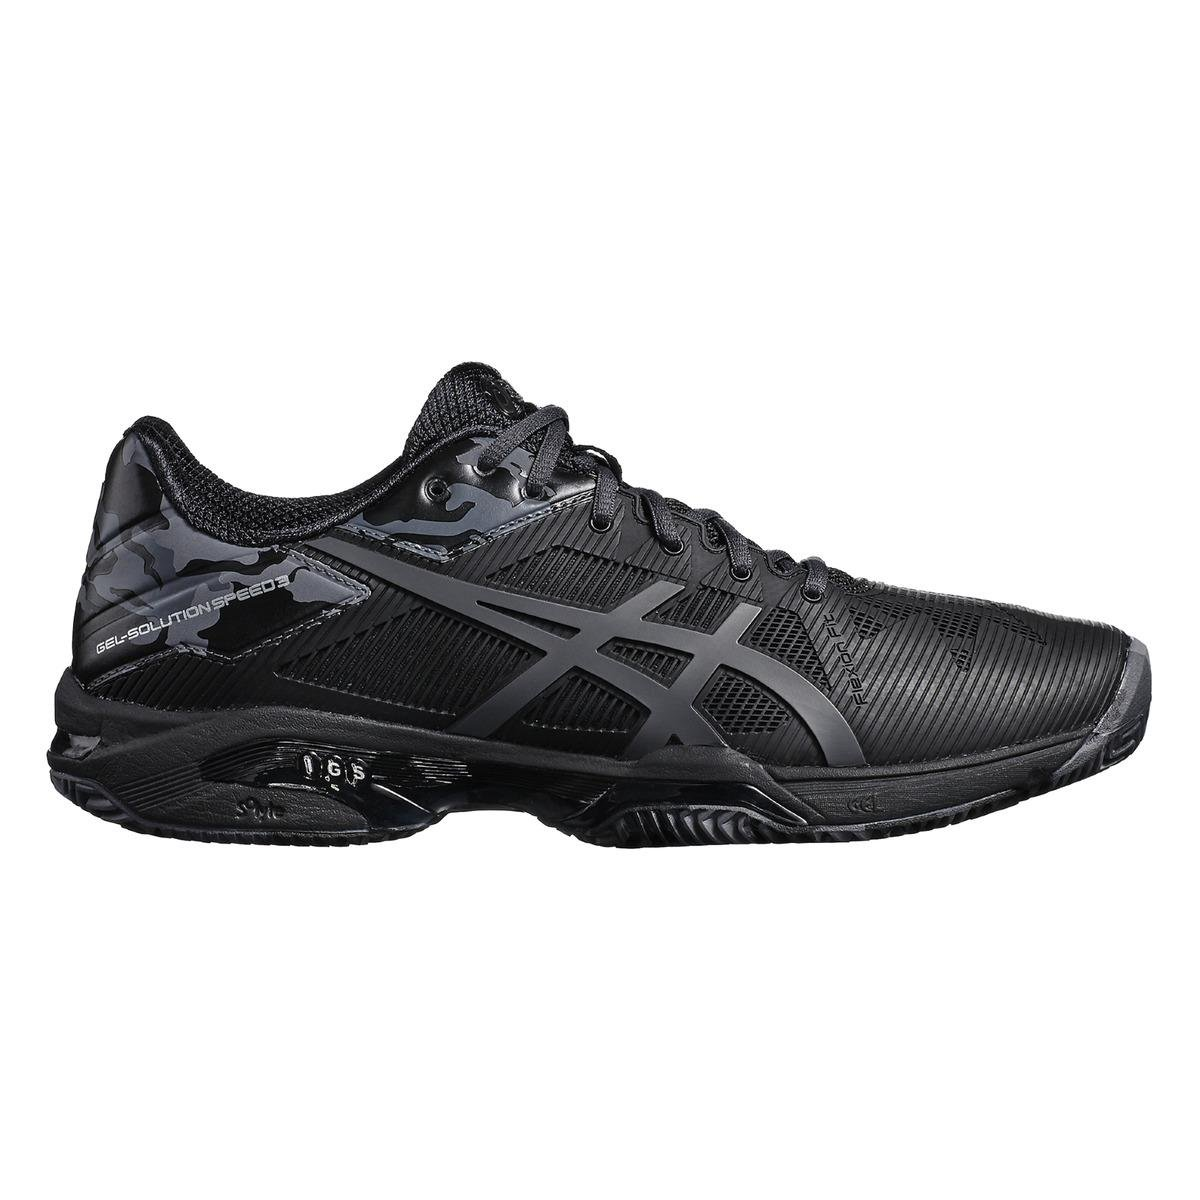 Asics Gel-solution Speed 3 Clay L.e. Tennis paddle Tennis Shoes in ... f22987098f45b